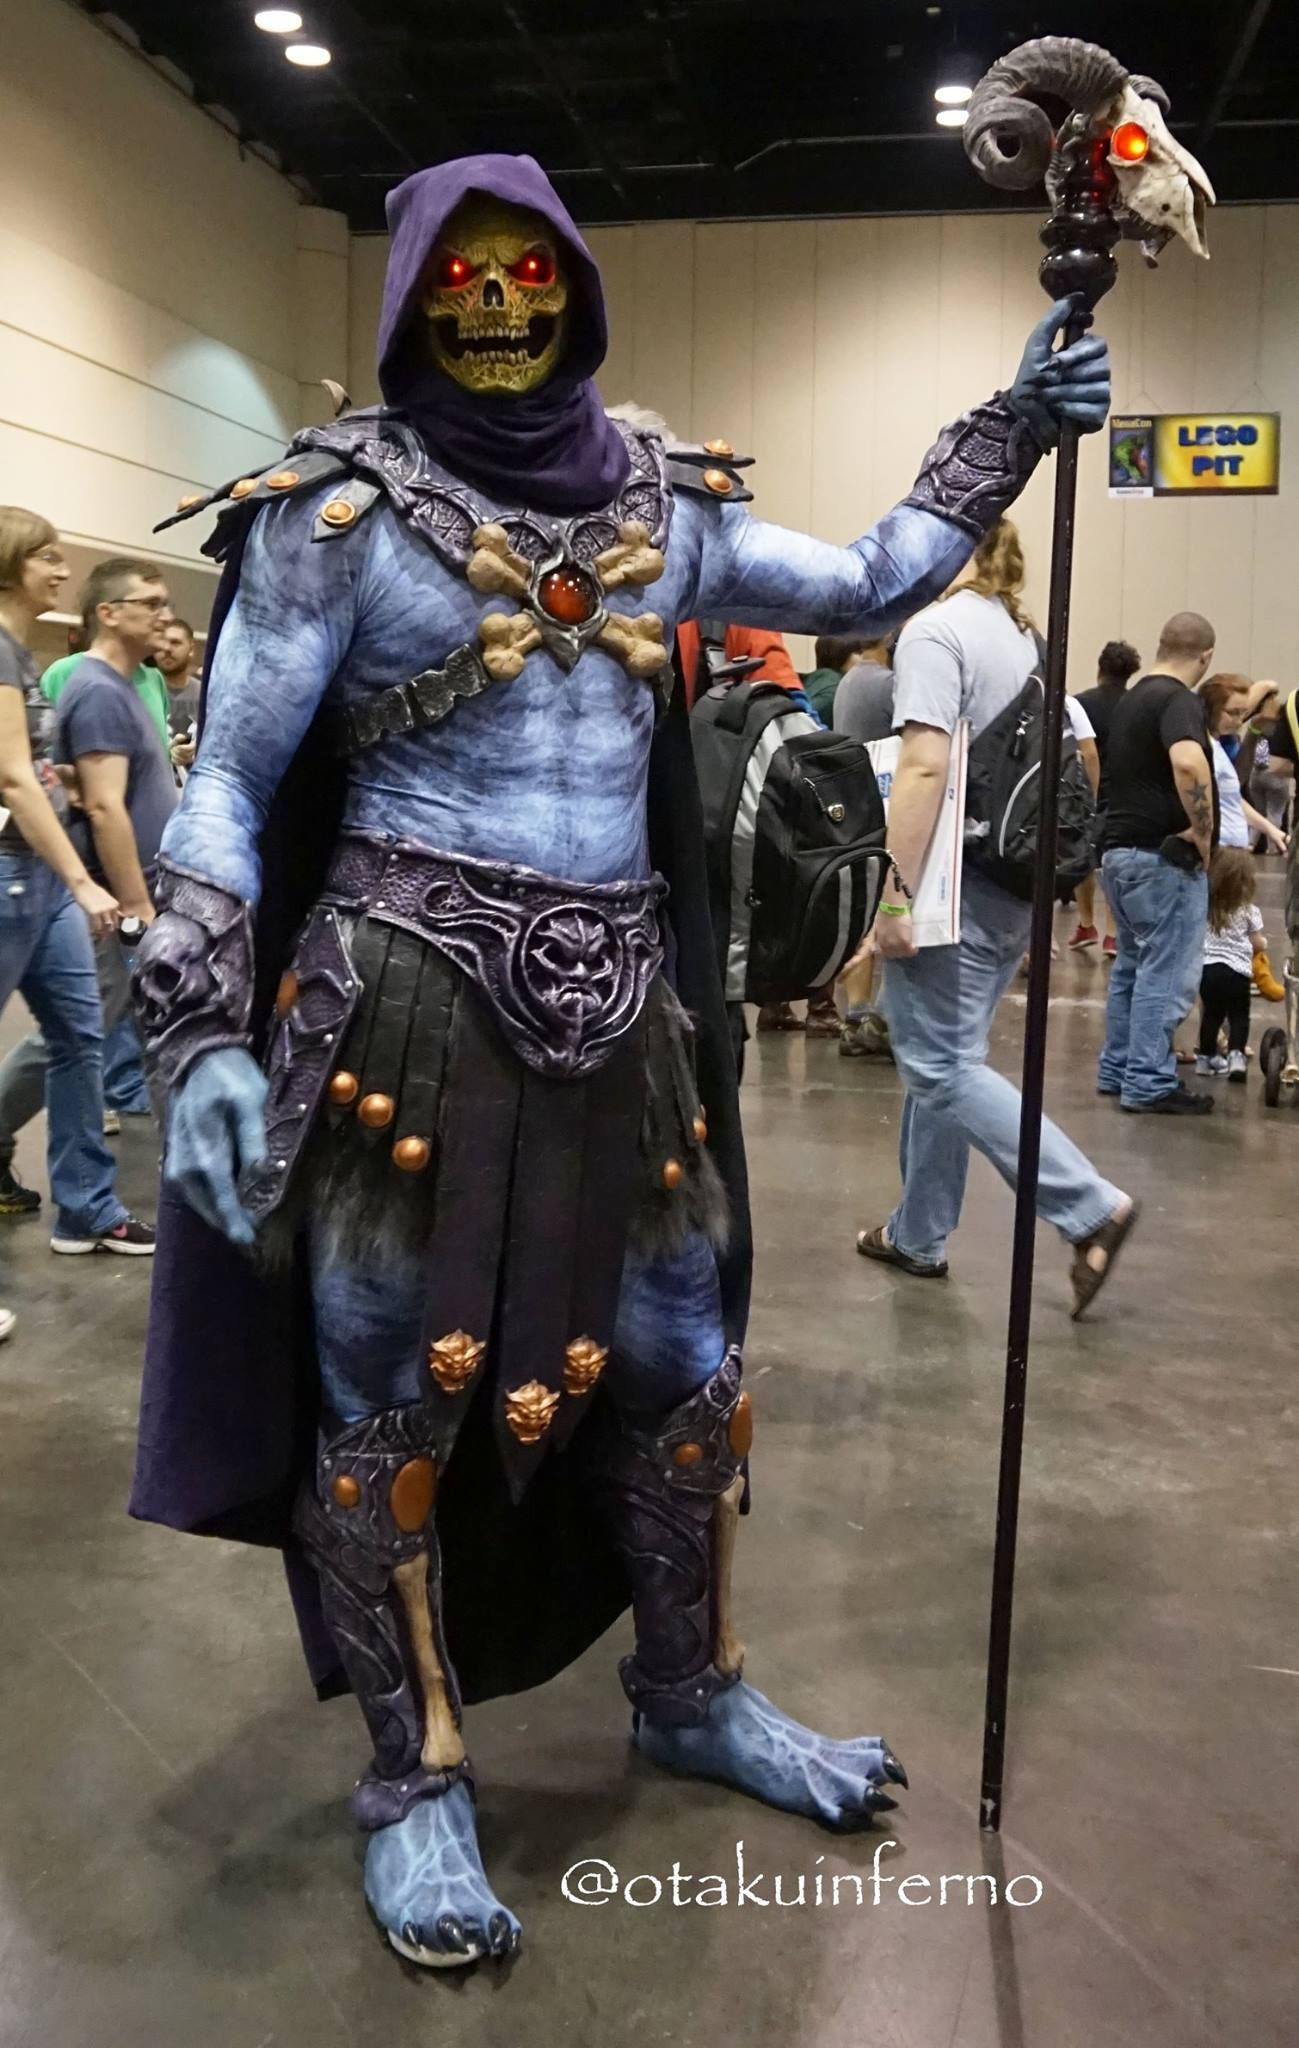 Best Skeletor cosplay I've ever seen.